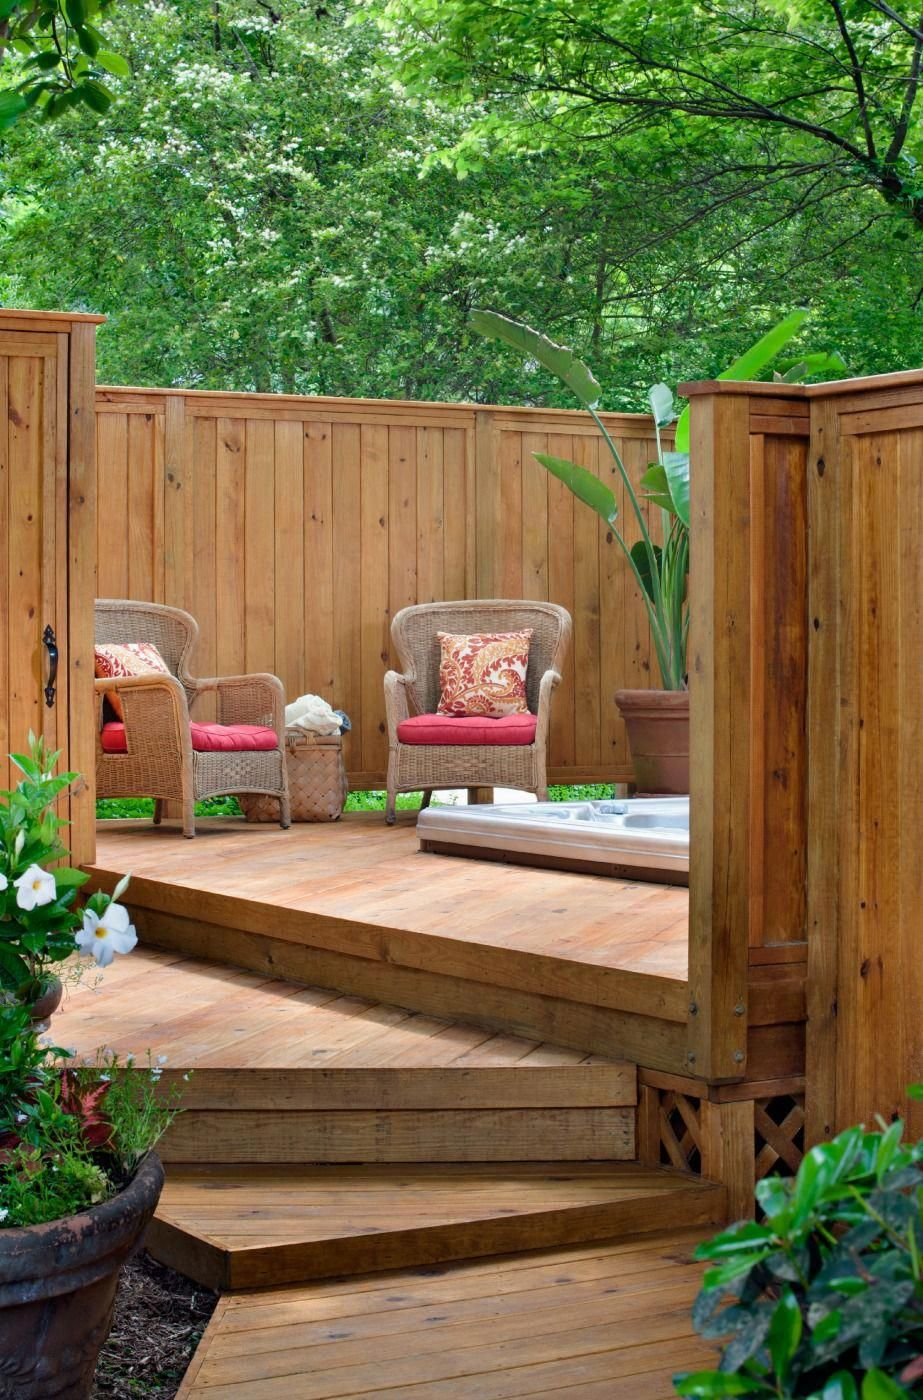 Wooden Deck Design With Privacy Fence For Hot Tub Hot Tub Landscaping Privacy Fence Designs Hot Tub Outdoor